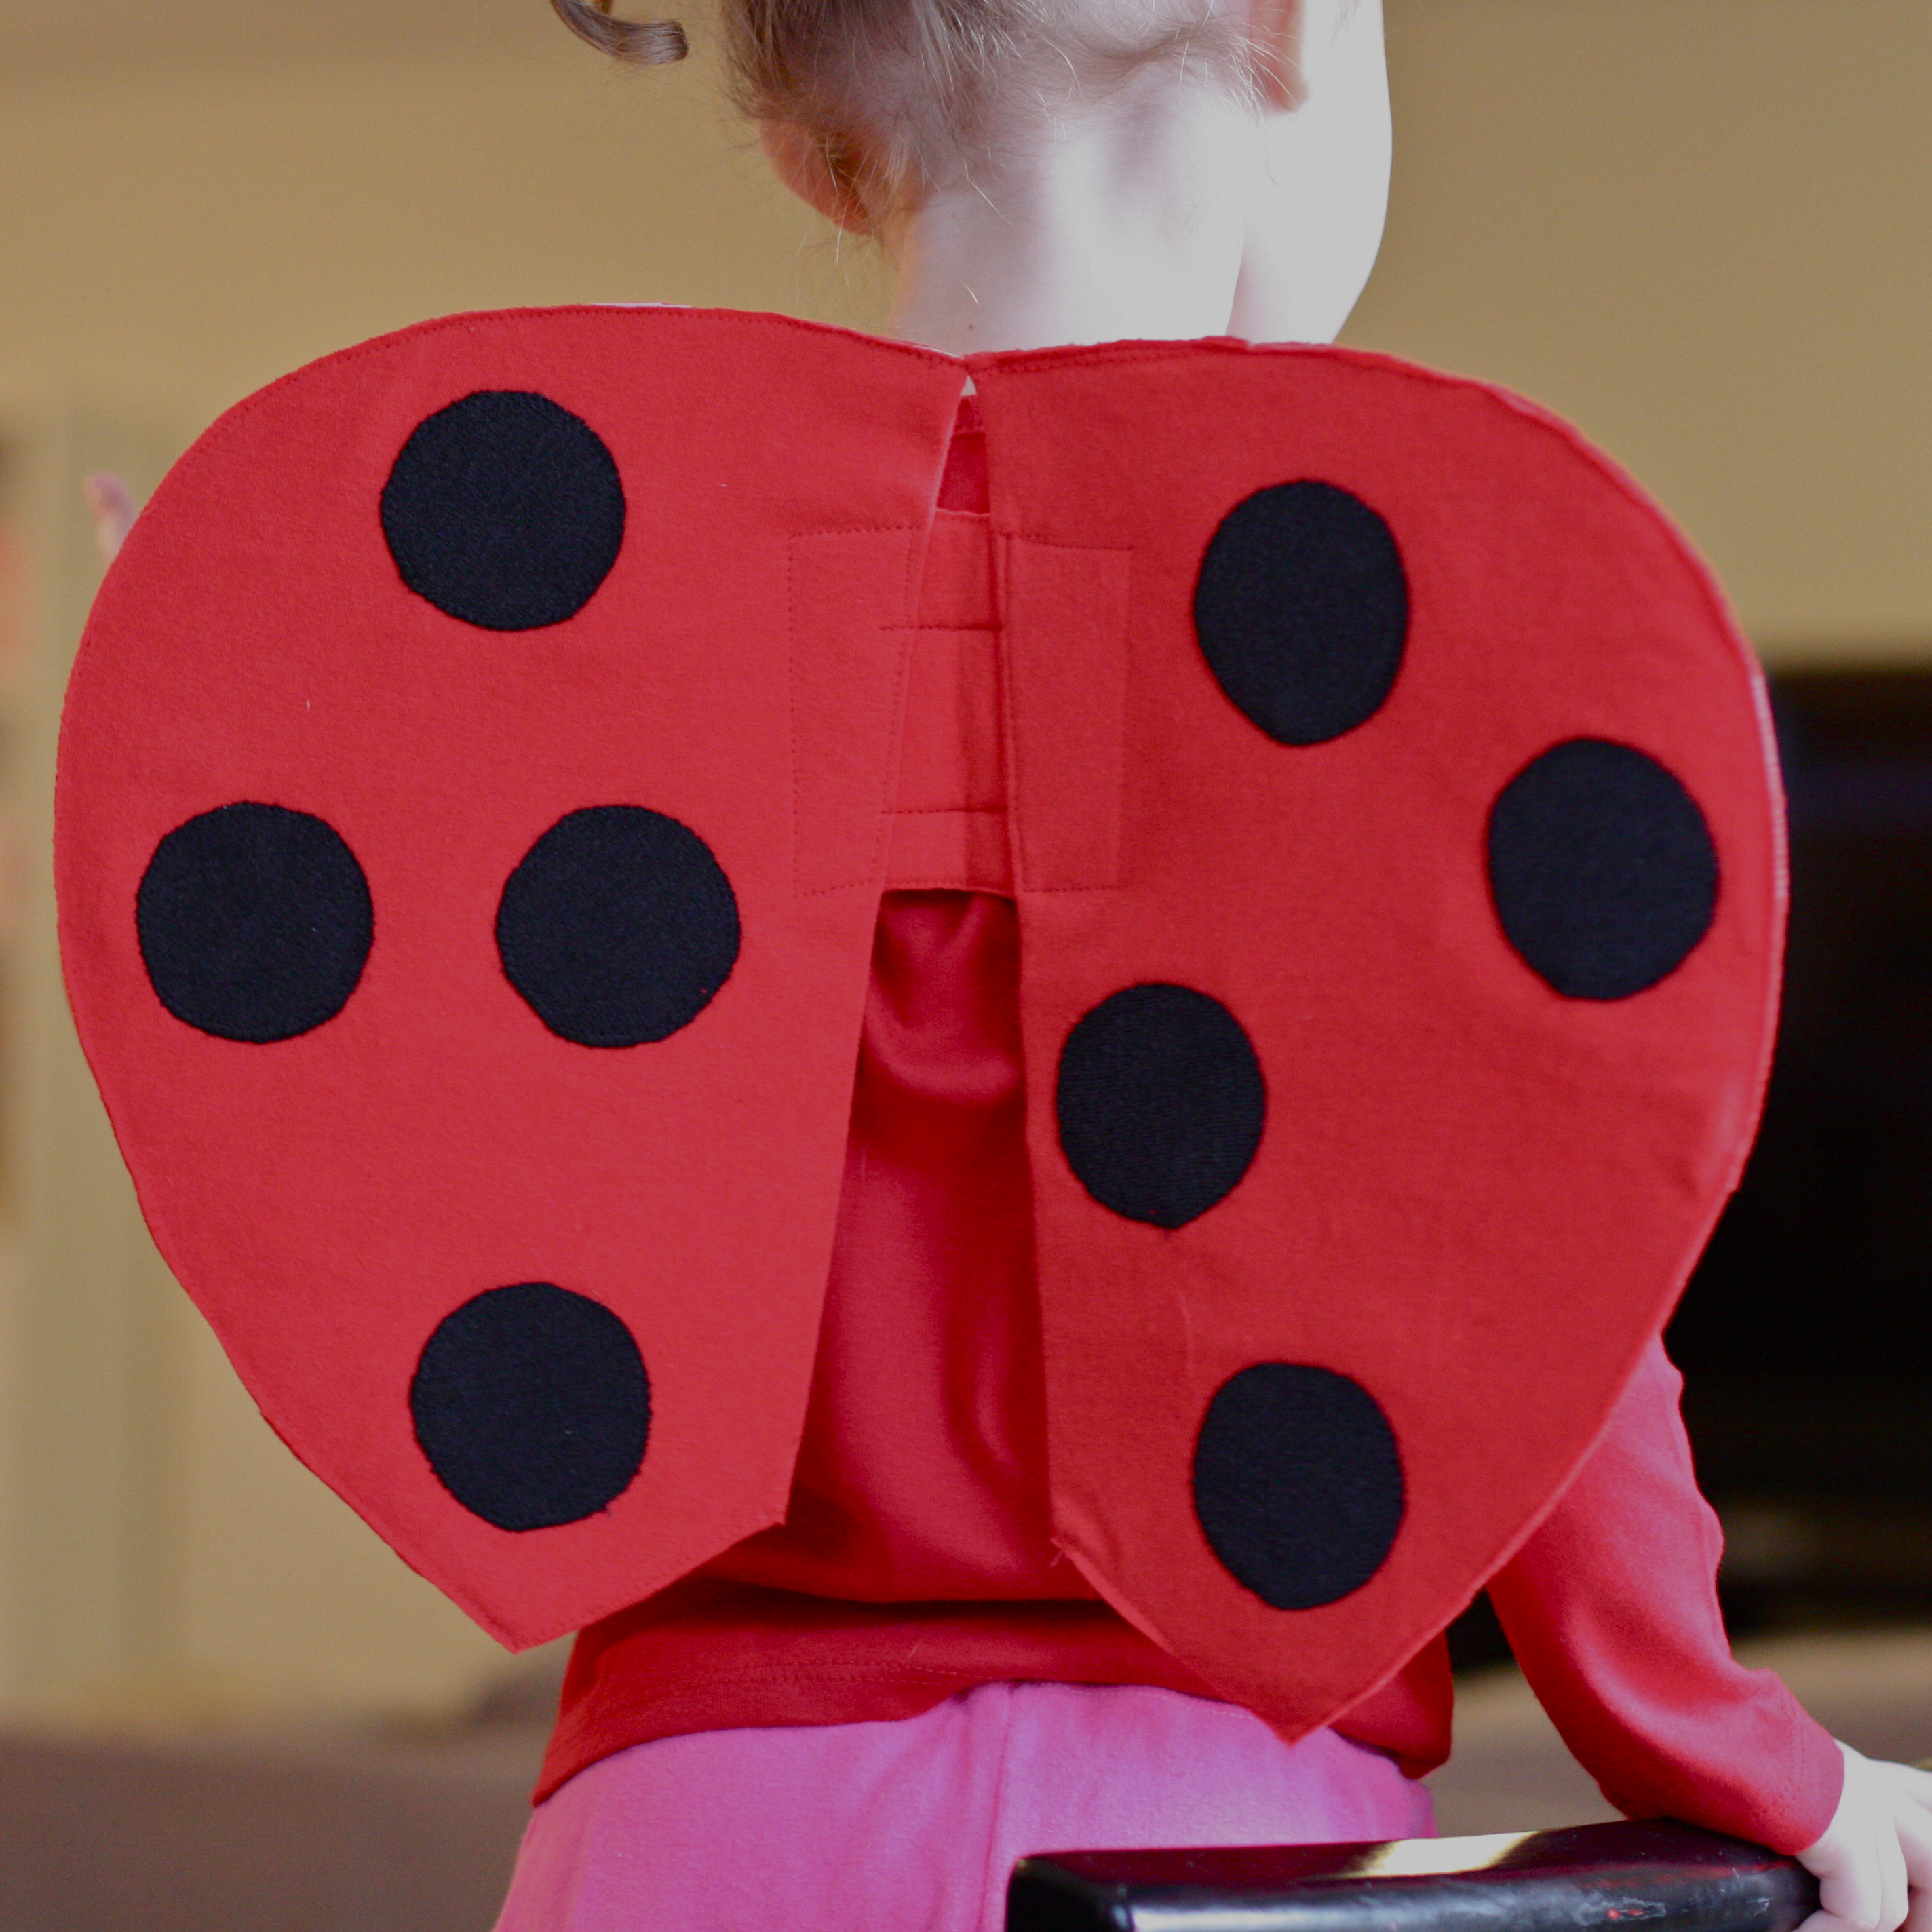 Handmade dress up diy very quick ladybug wings tutorial andreas img2238 solutioingenieria Image collections